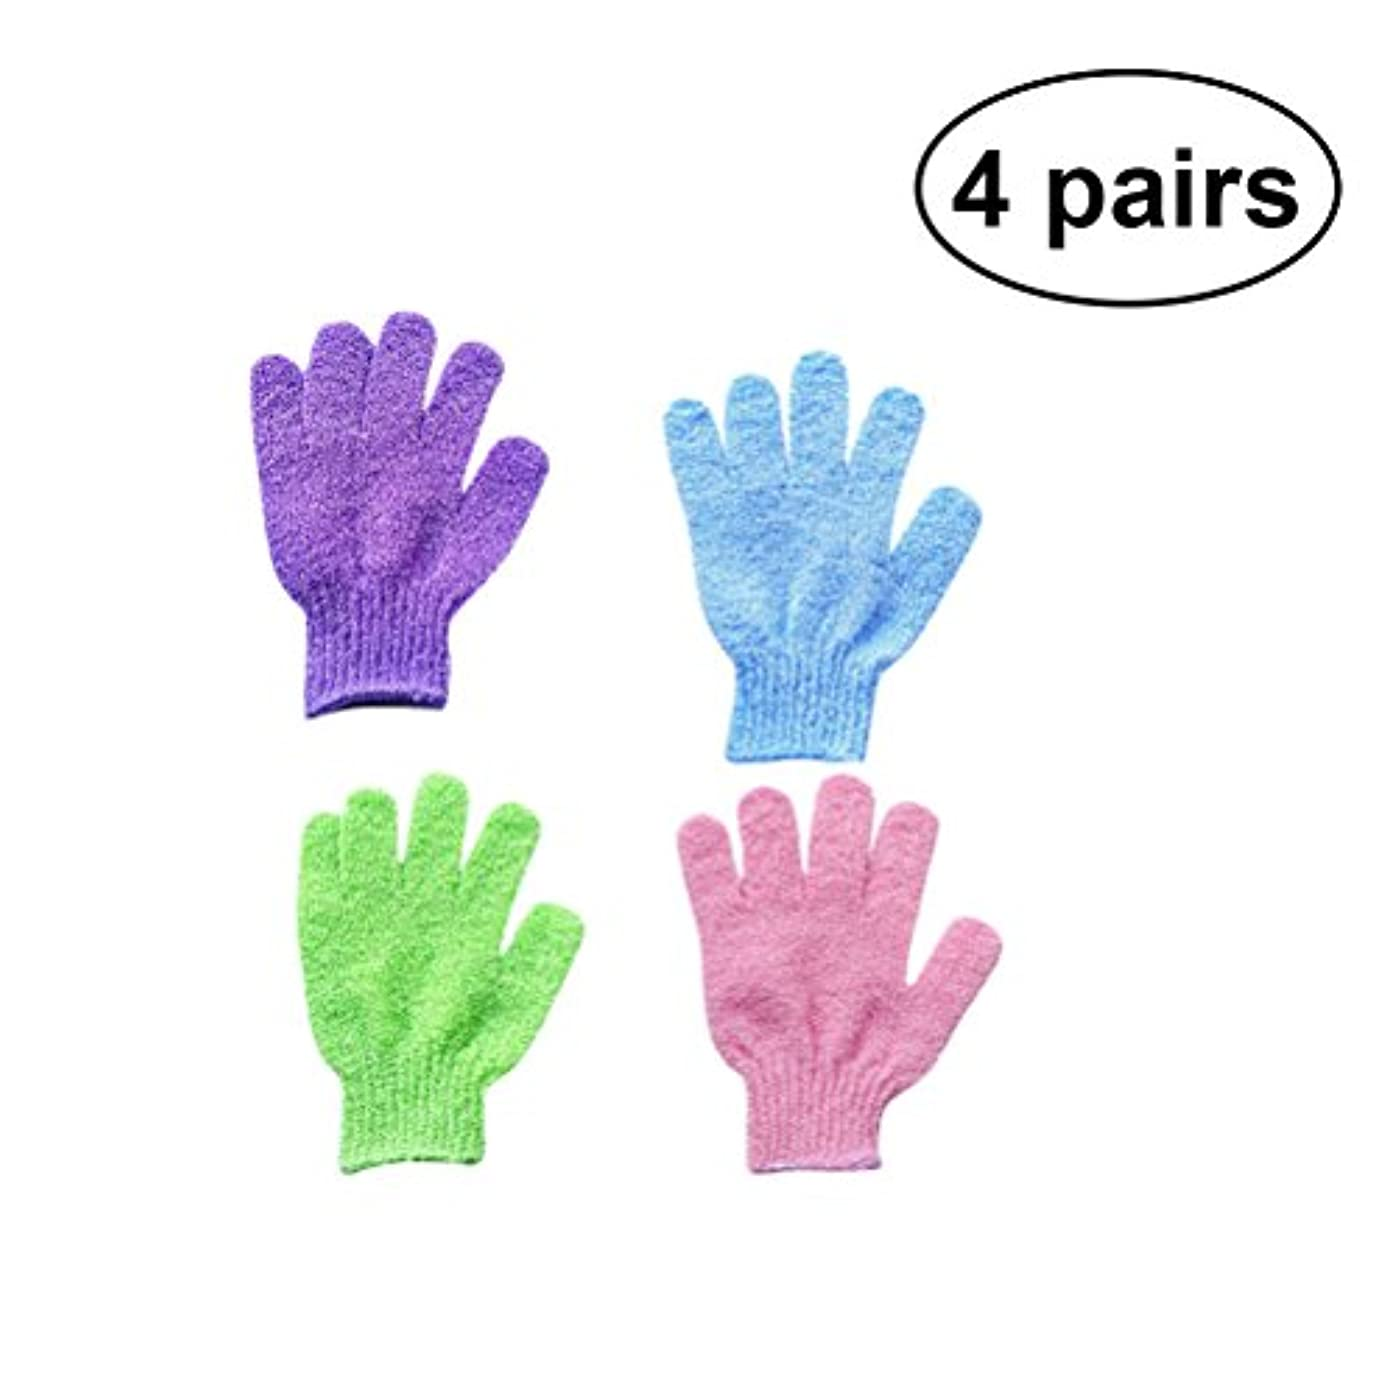 非行ドループマイクHealifty 4 Pairs Exfoliating Bath Gloves Shower Mitts Exfoliating Body Spa Massage Dead Skin Cell Remover